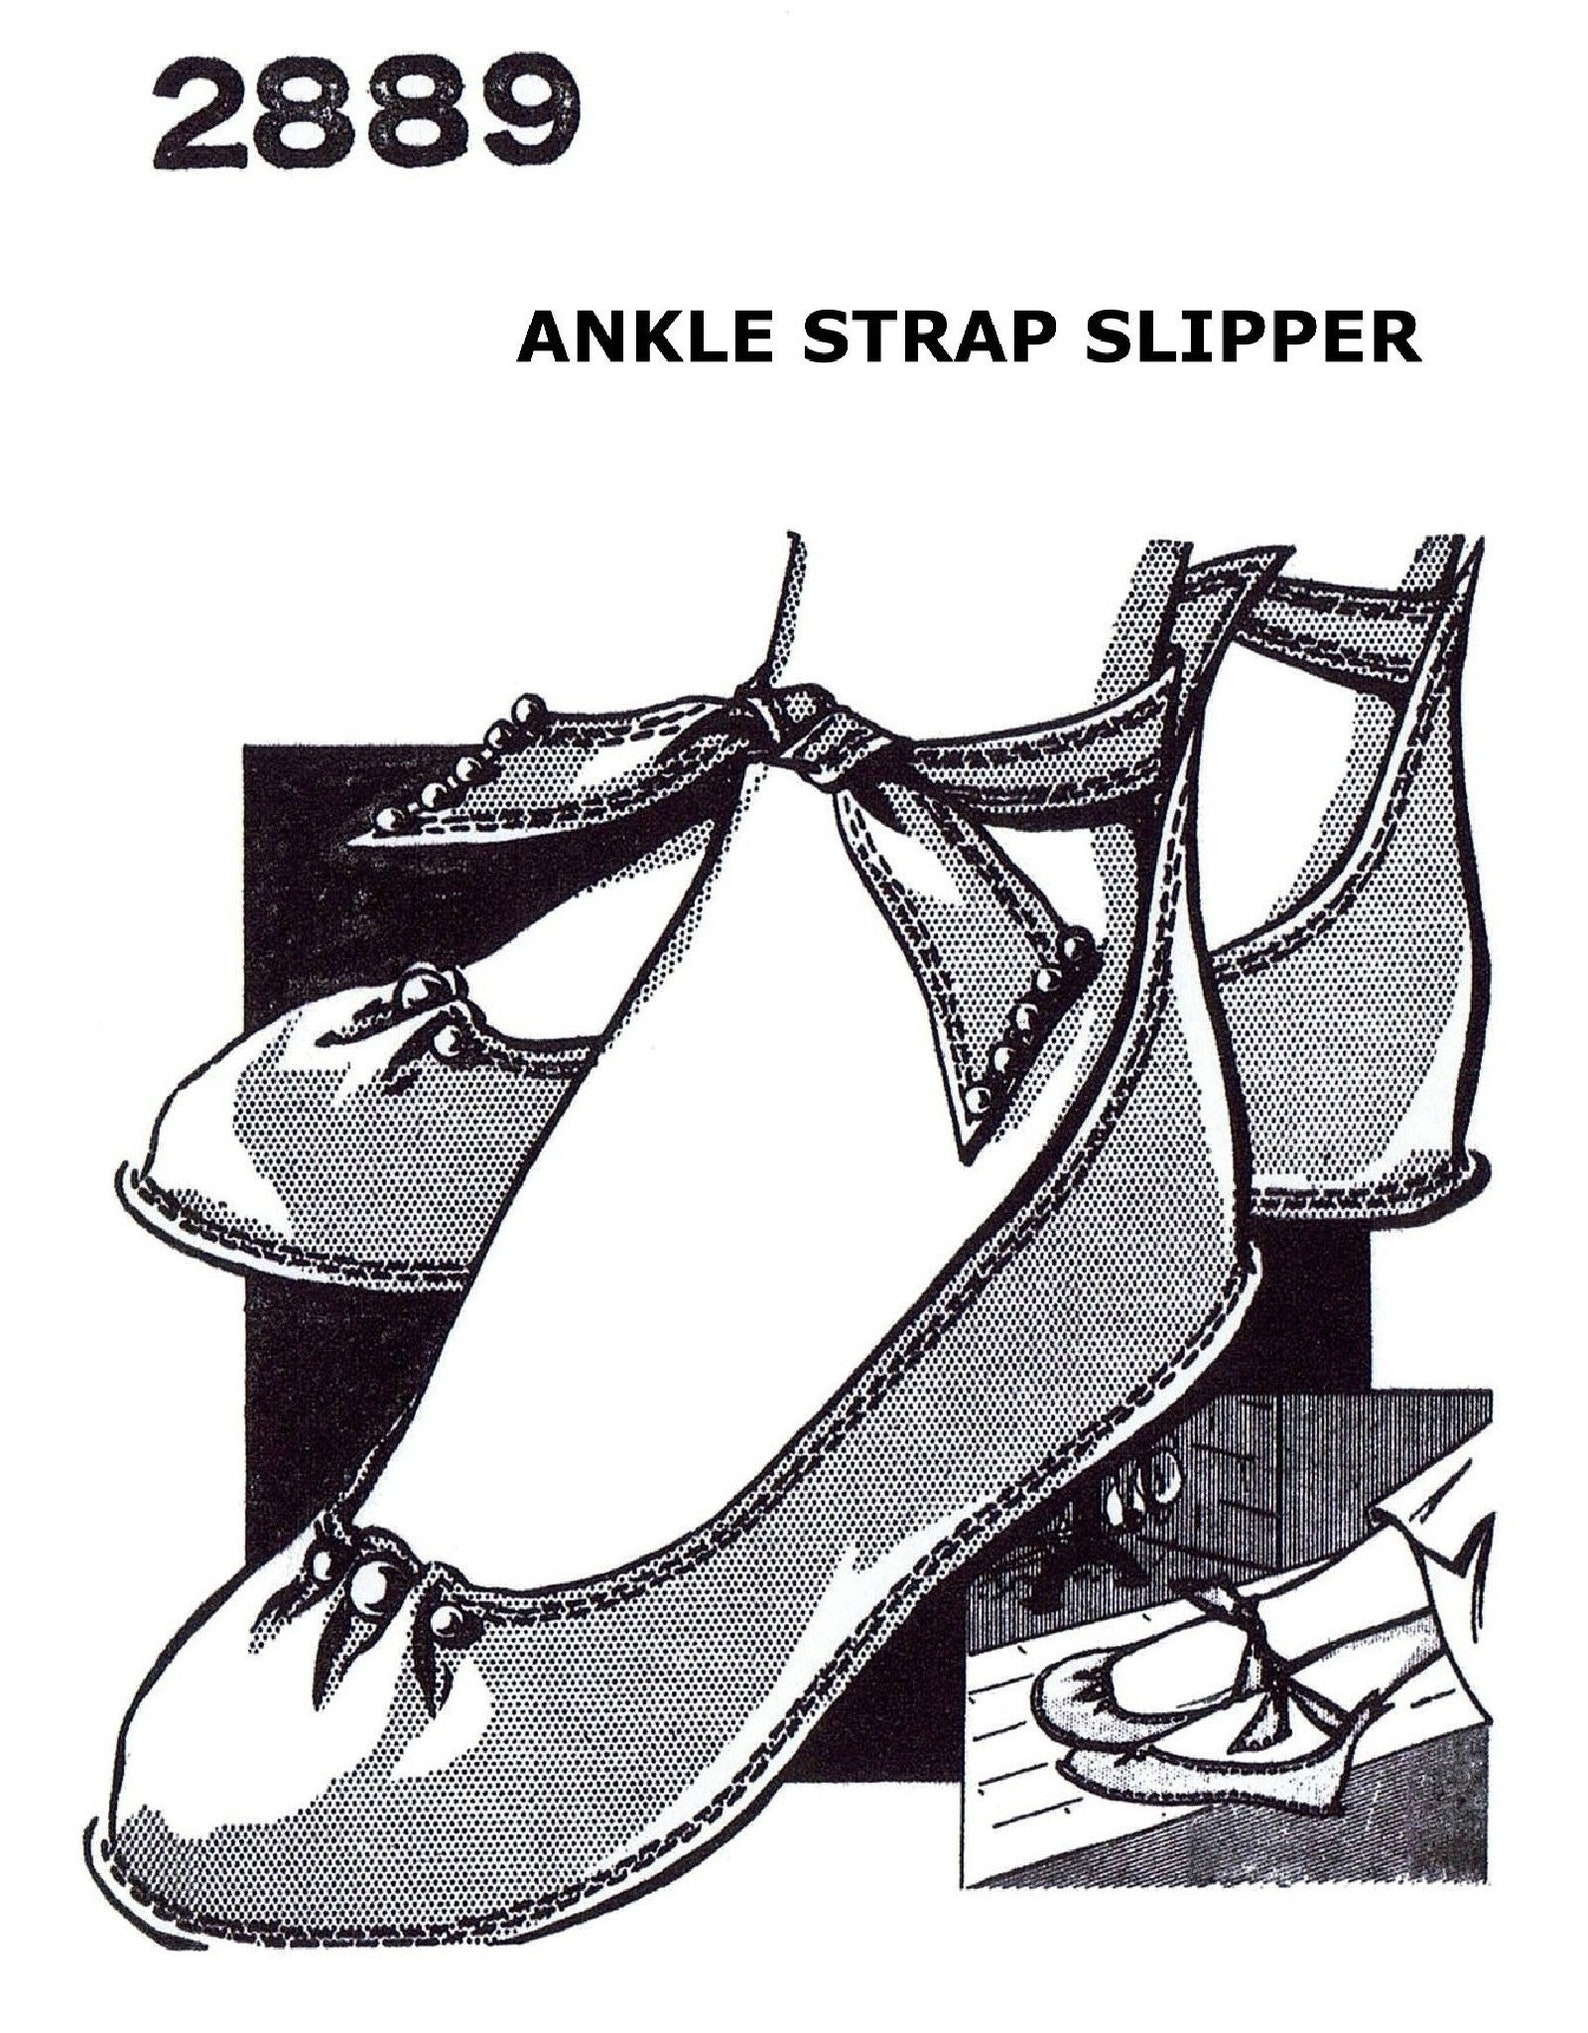 a3 ledger pdf digital delivery only!! ankle strap ballet slippers fabric material sewing pattern 2889 mail order vintage 40'